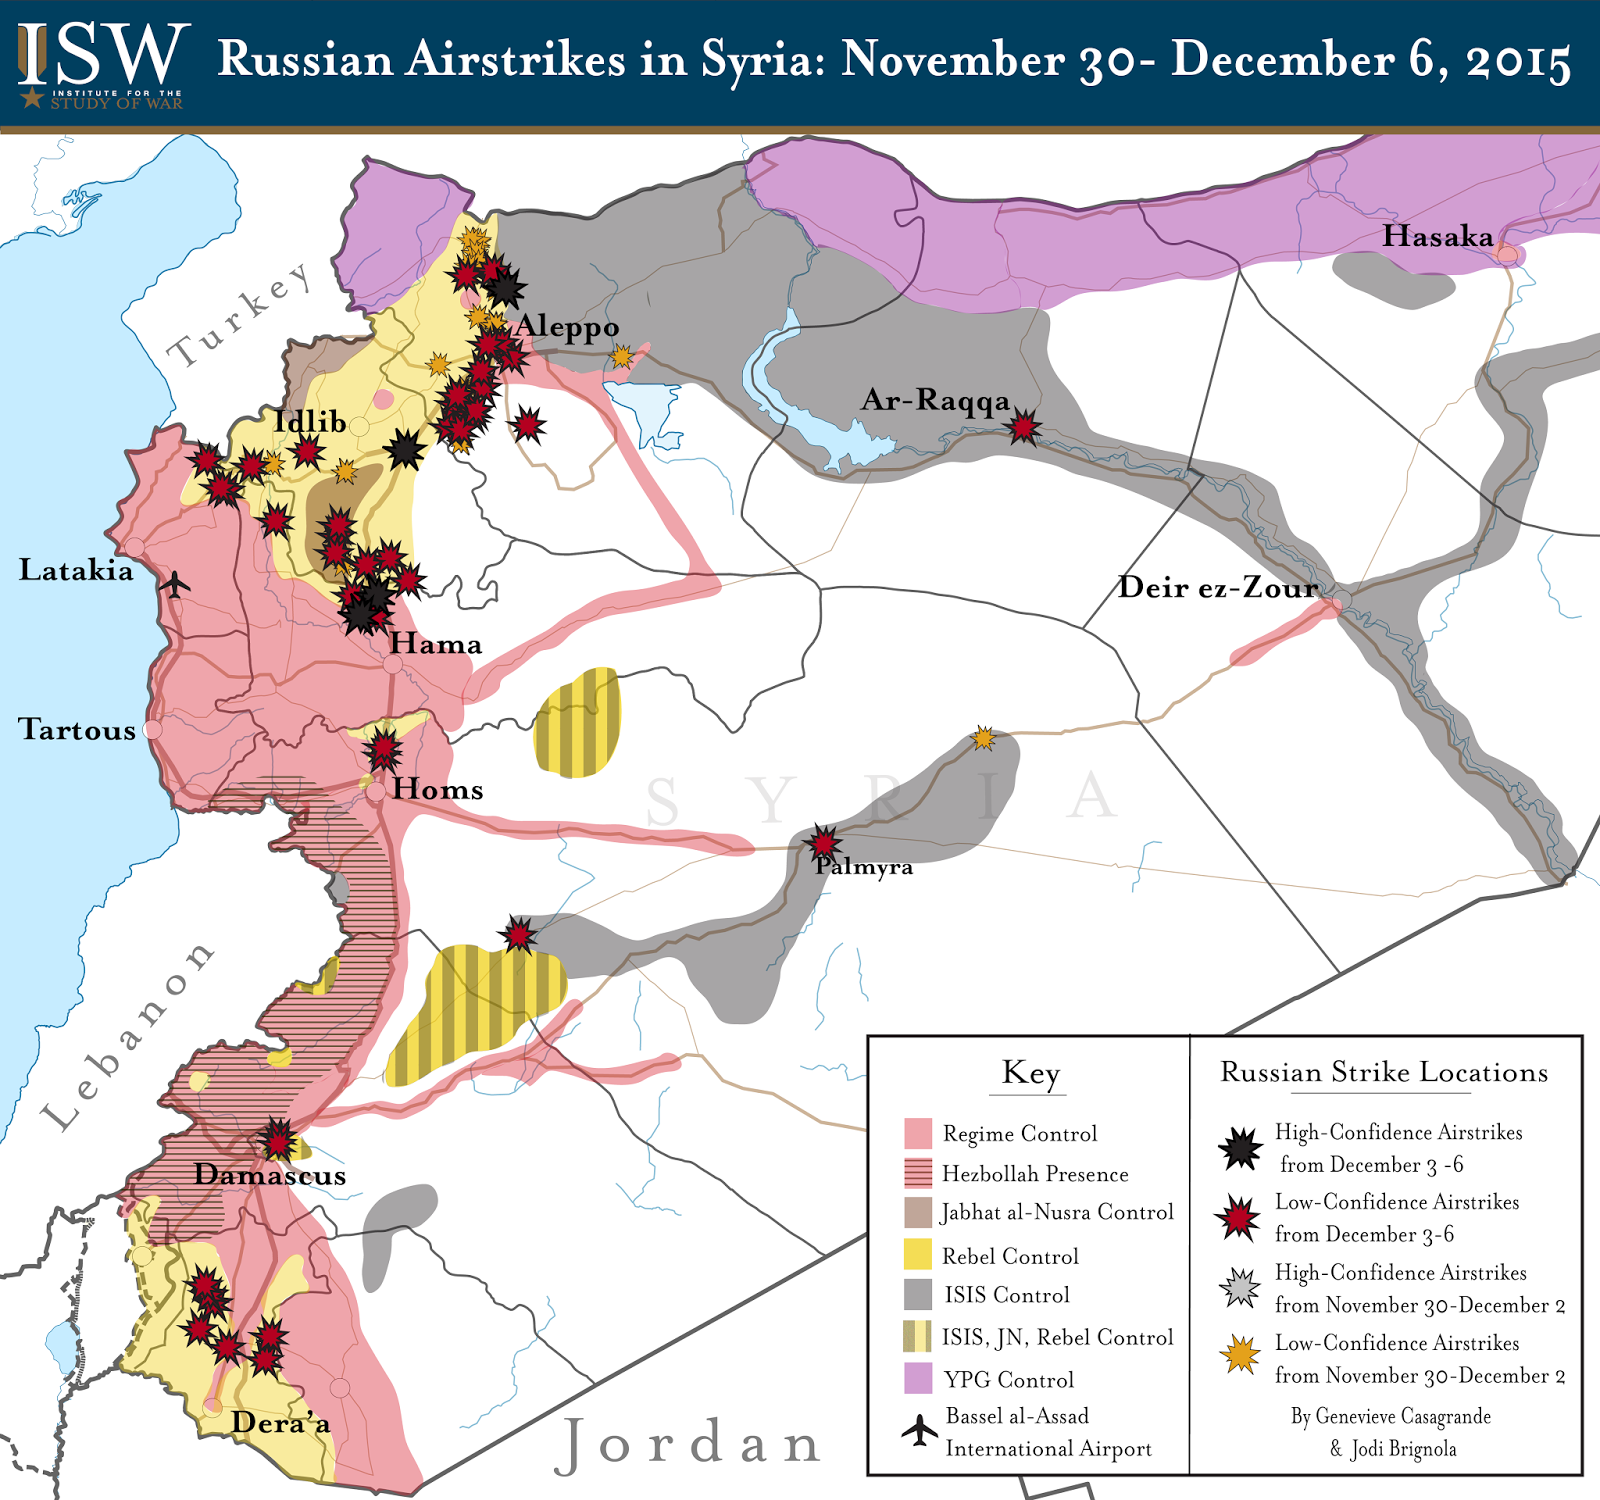 Russian Airstrikes in Syria: November 30 - December 6, 2015